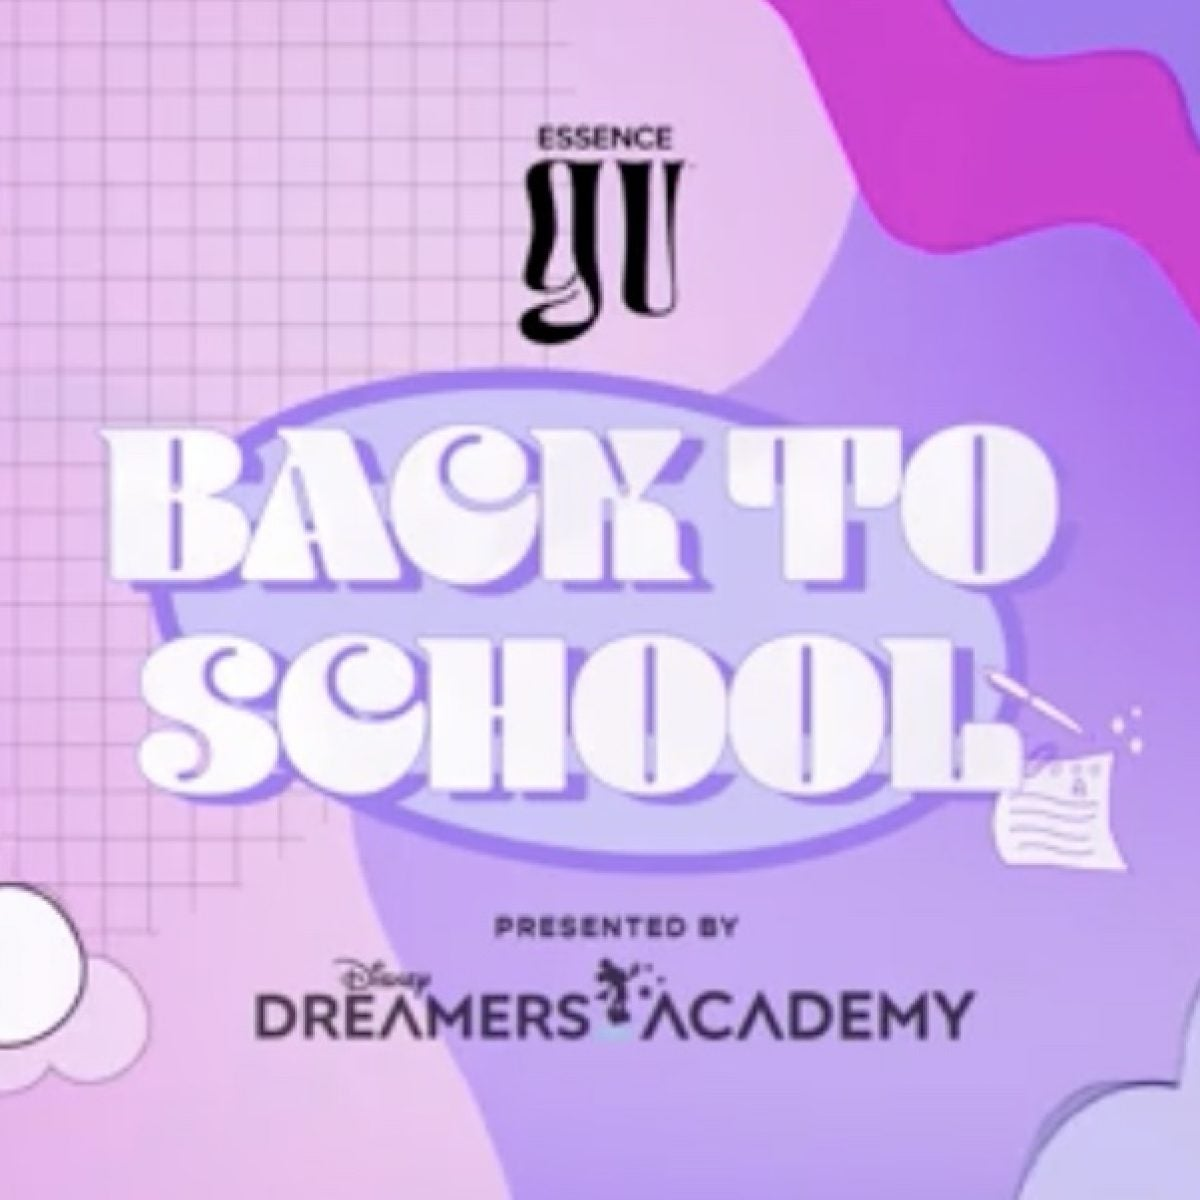 ESSENCE GU Went Back To School With The Disney Dreamers Academy!